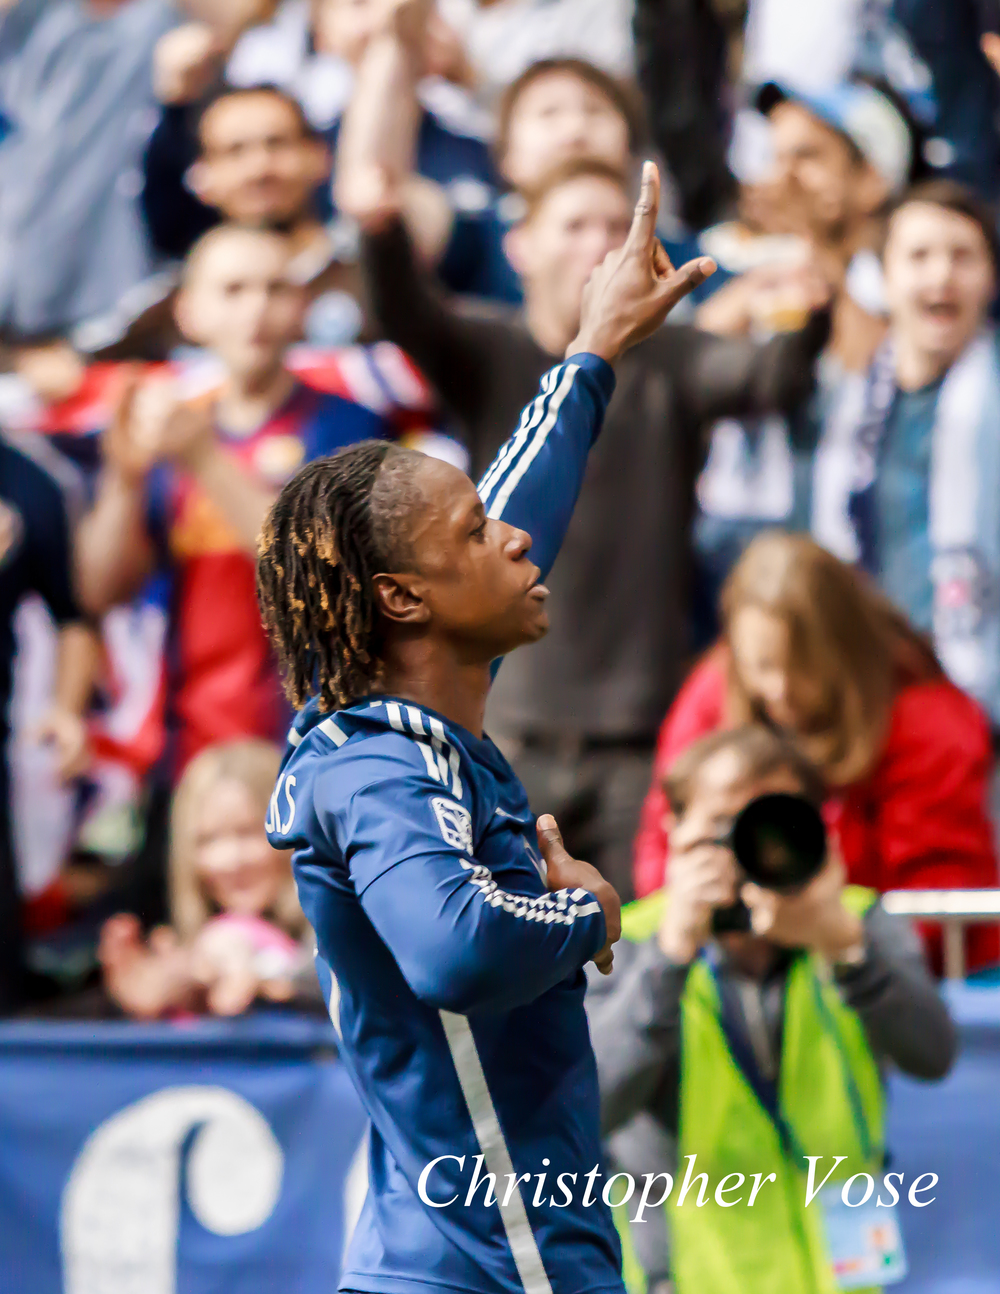 2014-04-05 Darren Mattocks Goal Celebration.jpg